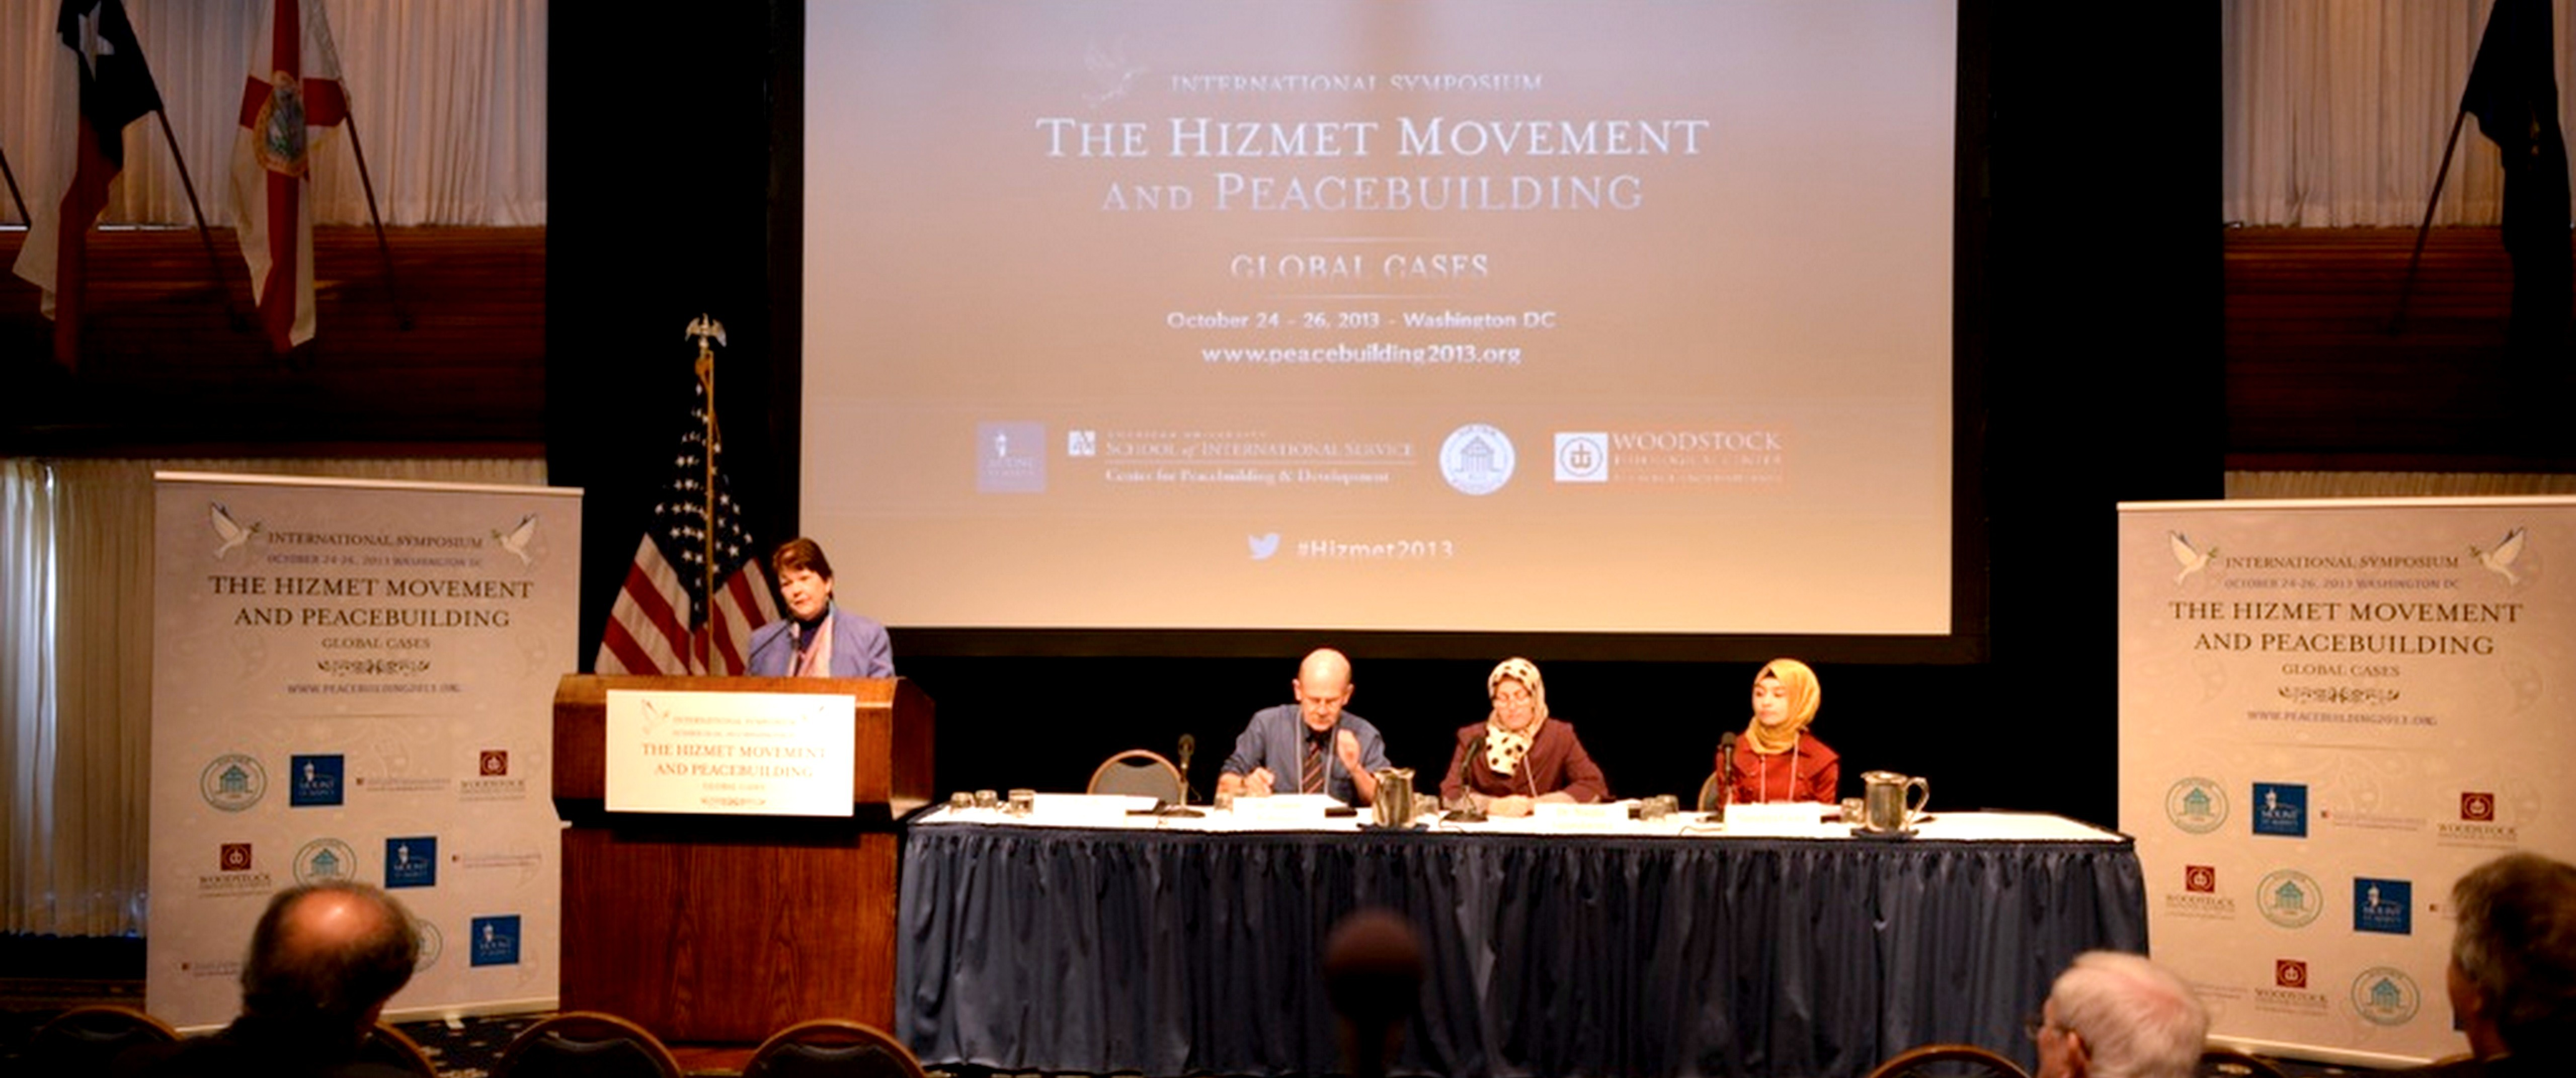 International Symposium on Peace-building and Hizmet/Gulen Movement